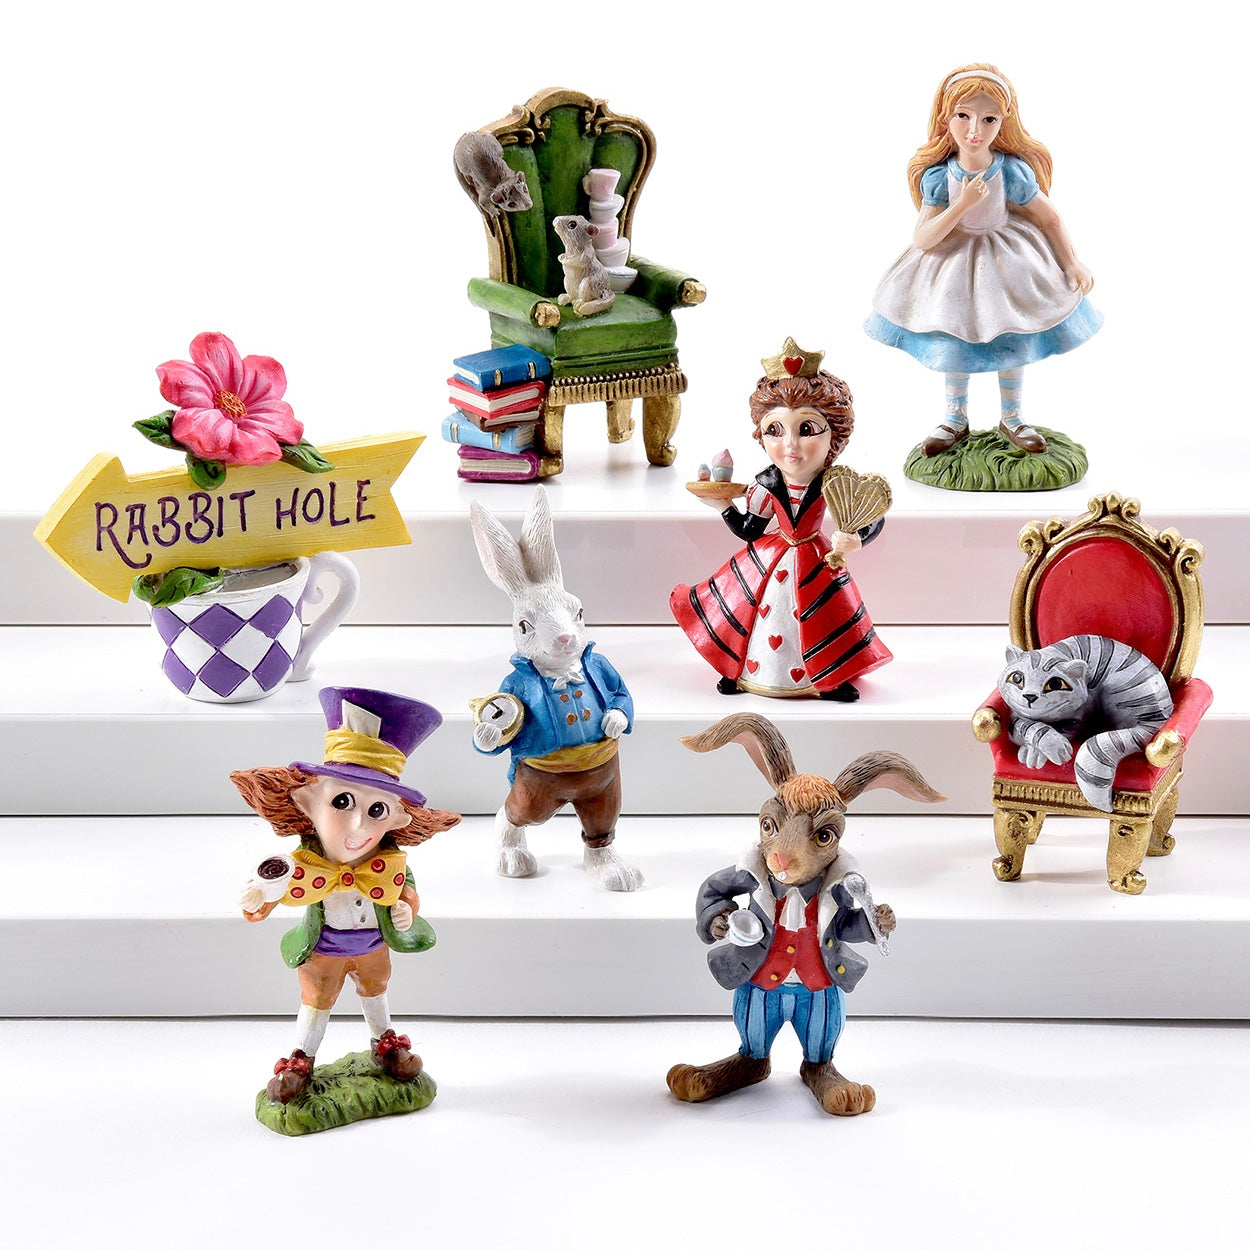 Mini Alice in Wonderland Figurines